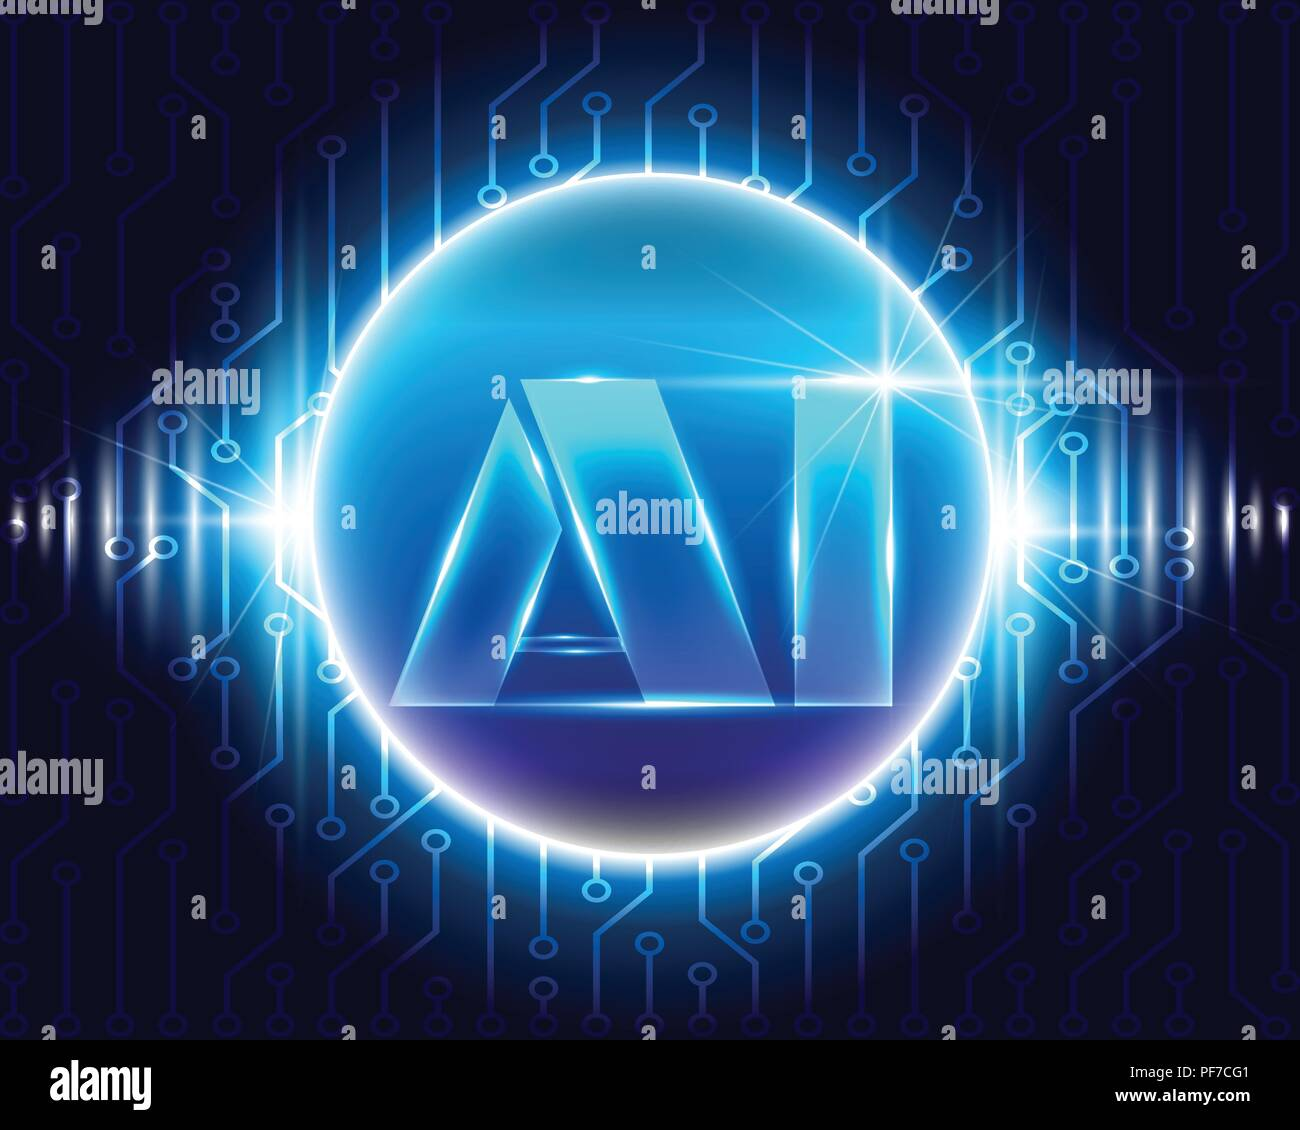 Ai Letter Digital Artificial Intelligence With Circuit Symbols And Electronic Commonly Used Big Data Business System Conceptvector Illustration Eps10